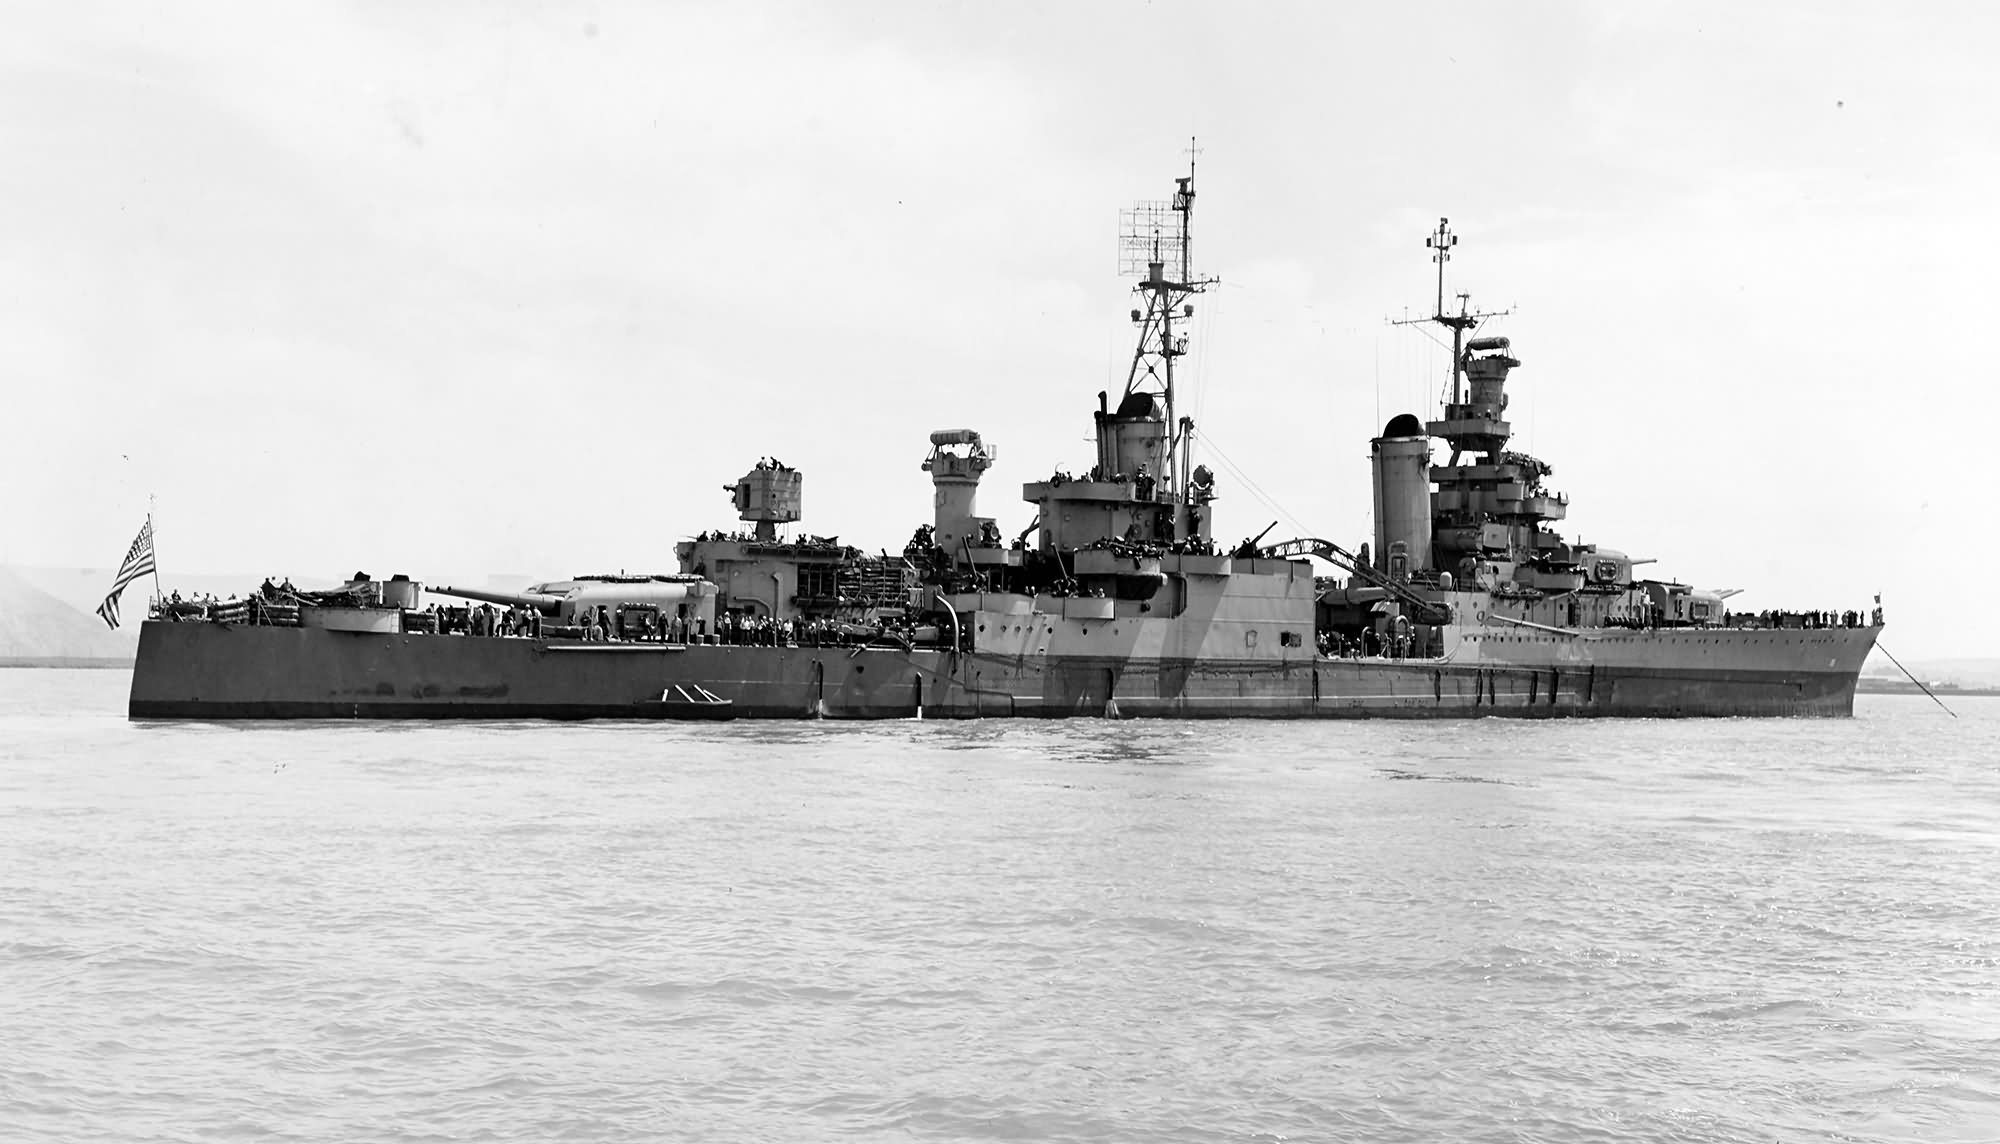 On the heavy cruiser USS Indianapolis, 1934